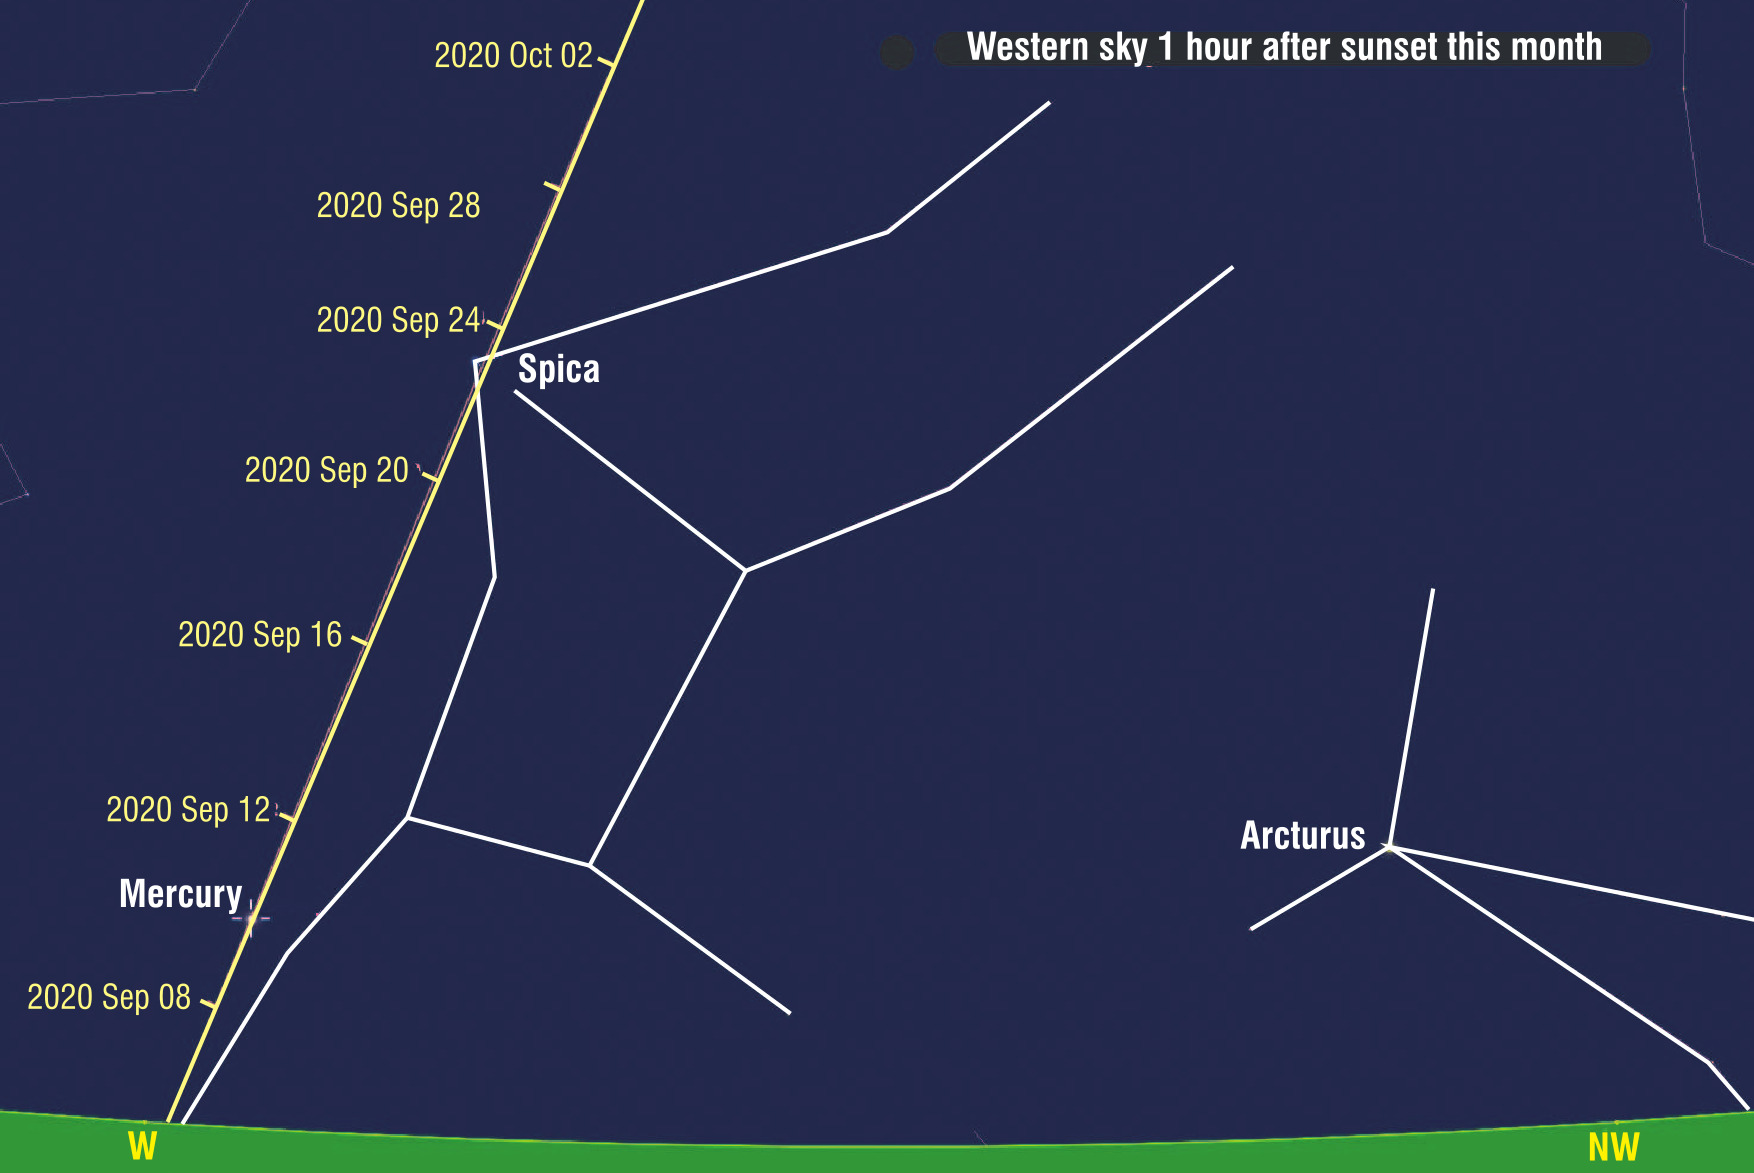 Western sky one hour after sunset this month.